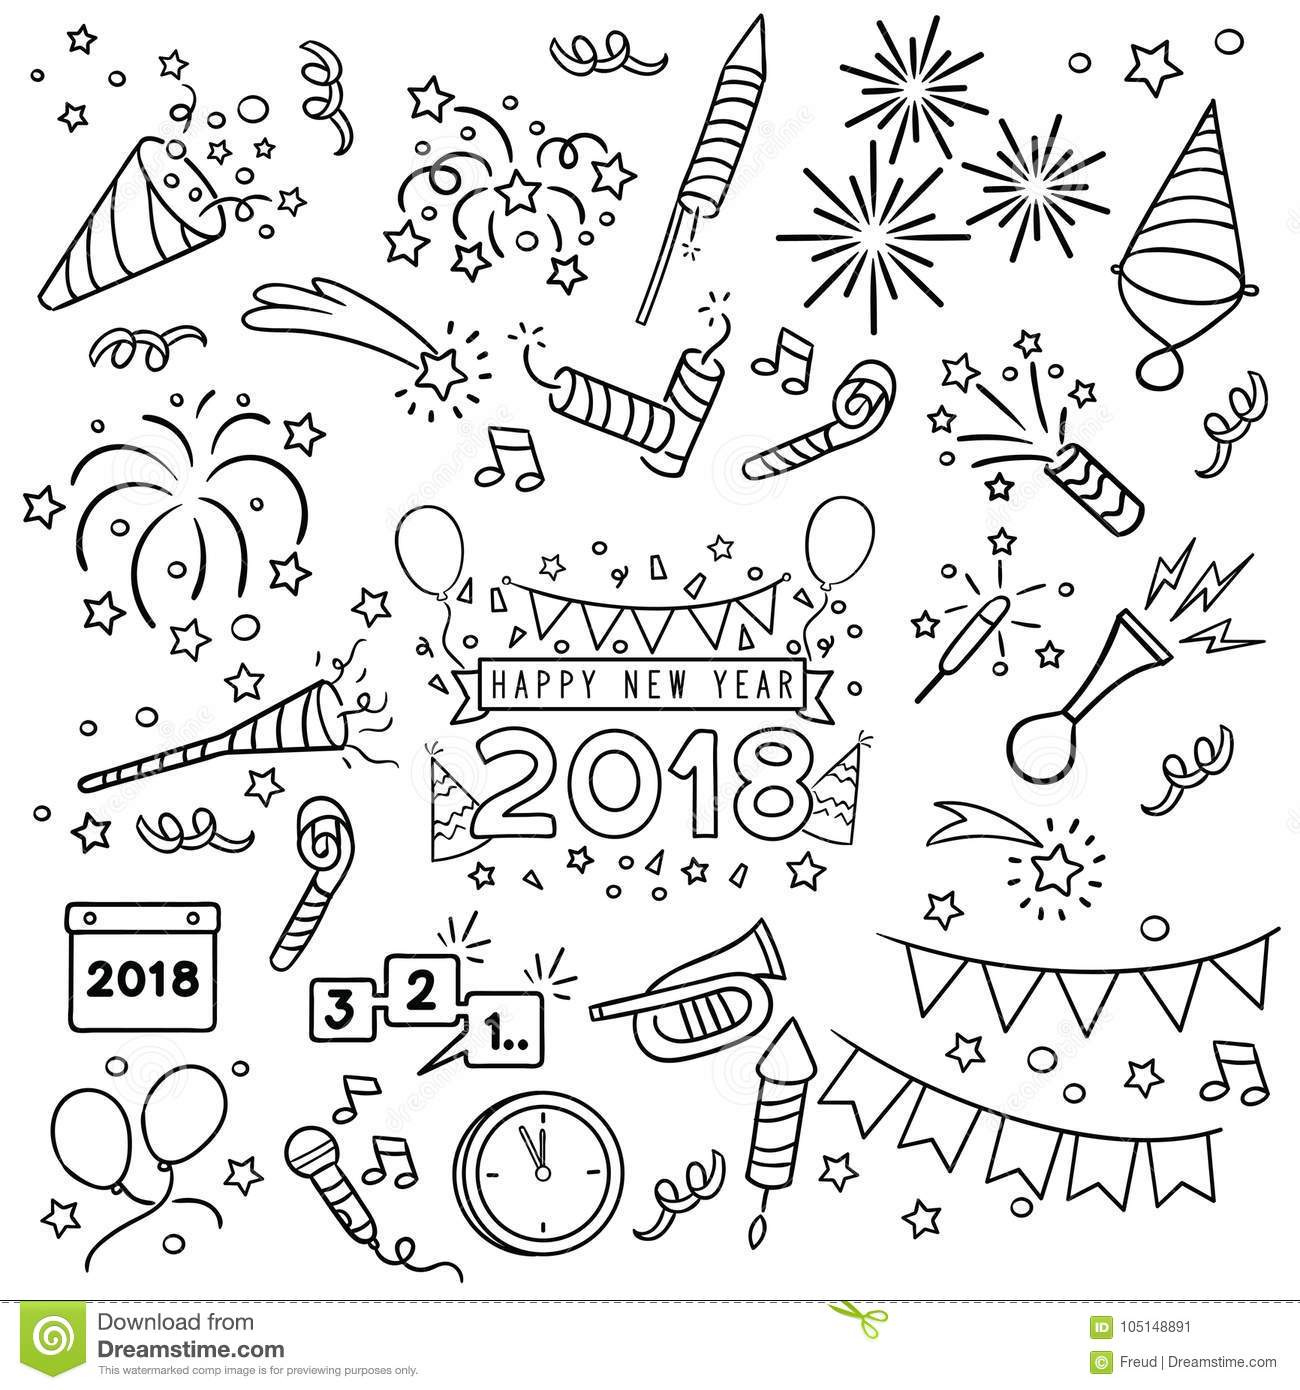 New Year Celebration Line Draw Stock Vector